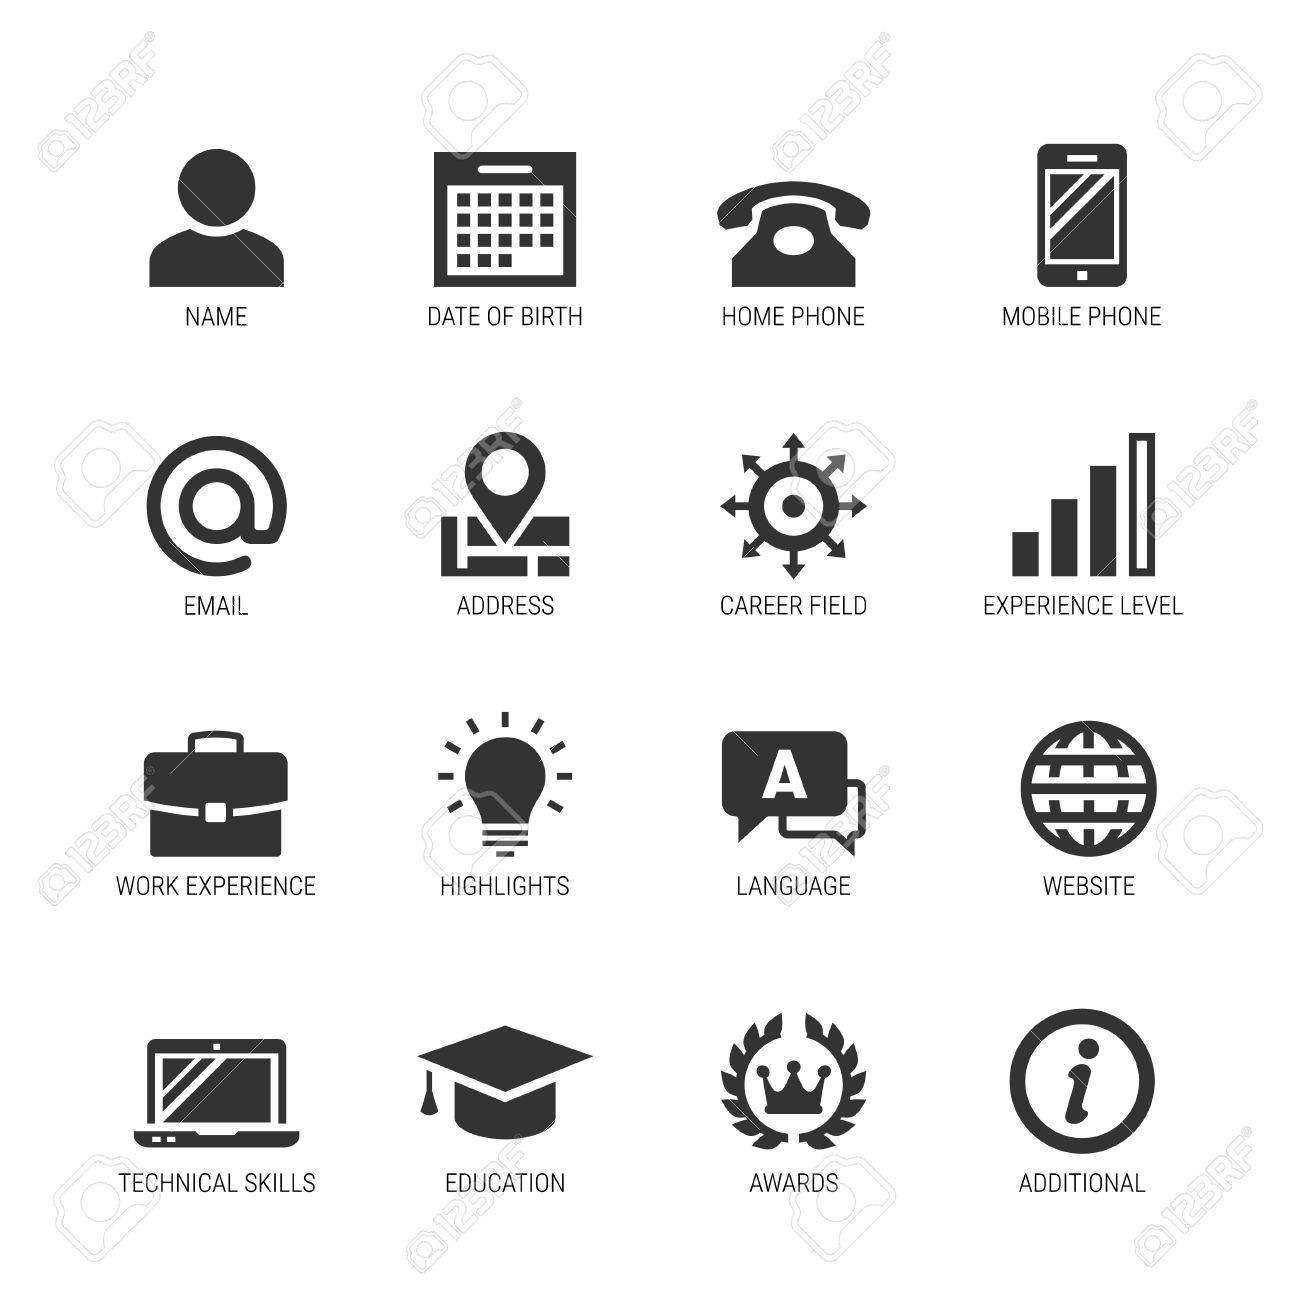 curriculum vitae icons  Resume Or Curriculum Vitae Related Vector Icon Set Royalty Free ...